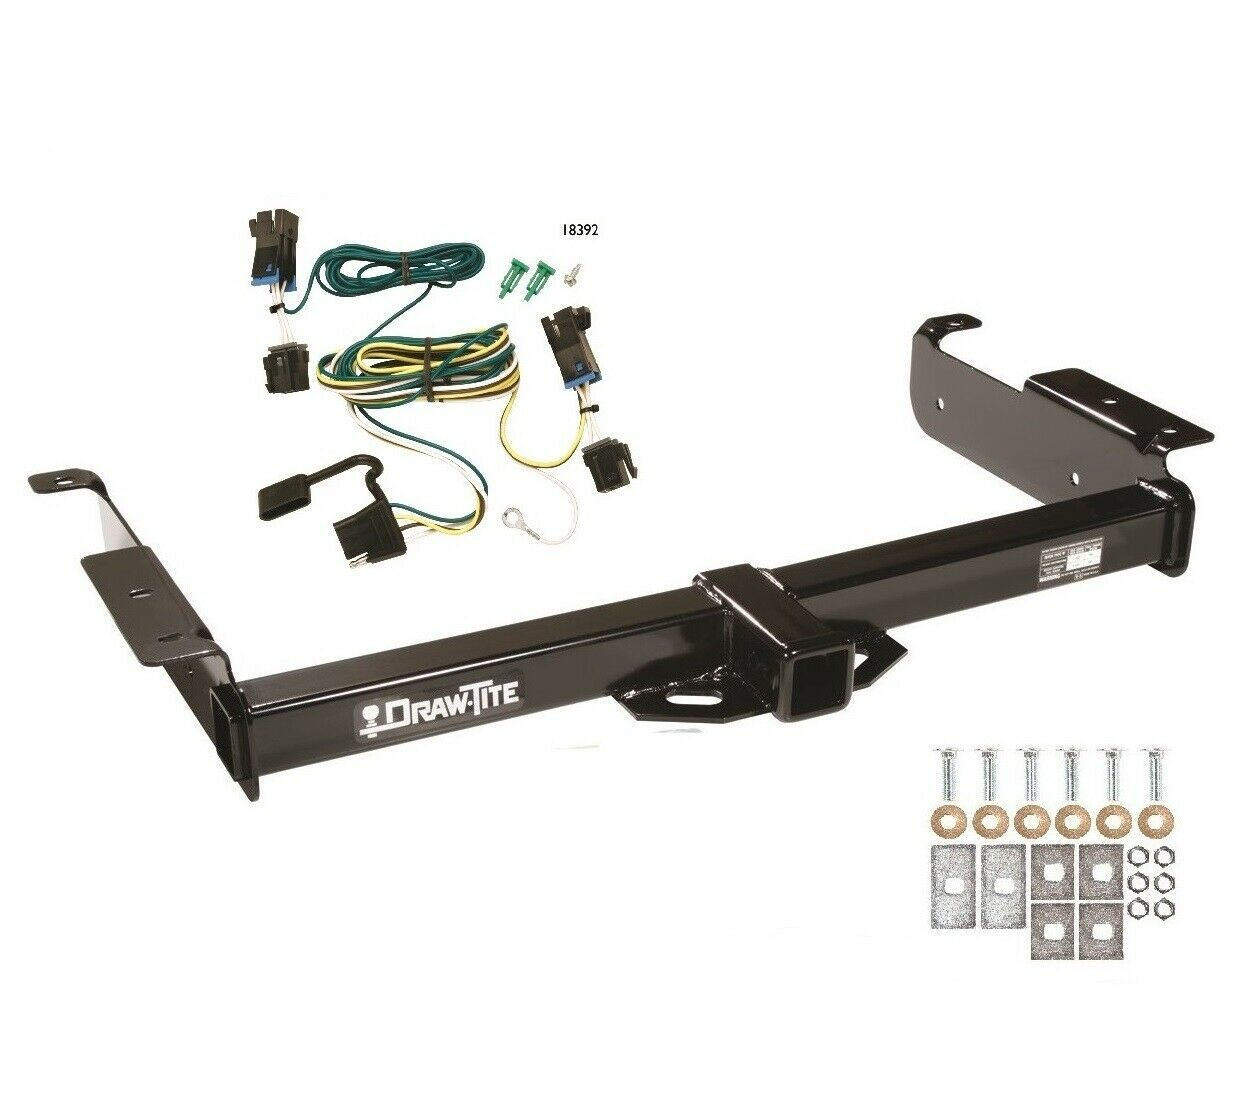 Class 3 Trailer Hitch & Wiring For 2003-2017 Chevy Express Van 2500 3500  75189 1 of 4Only 1 available See More